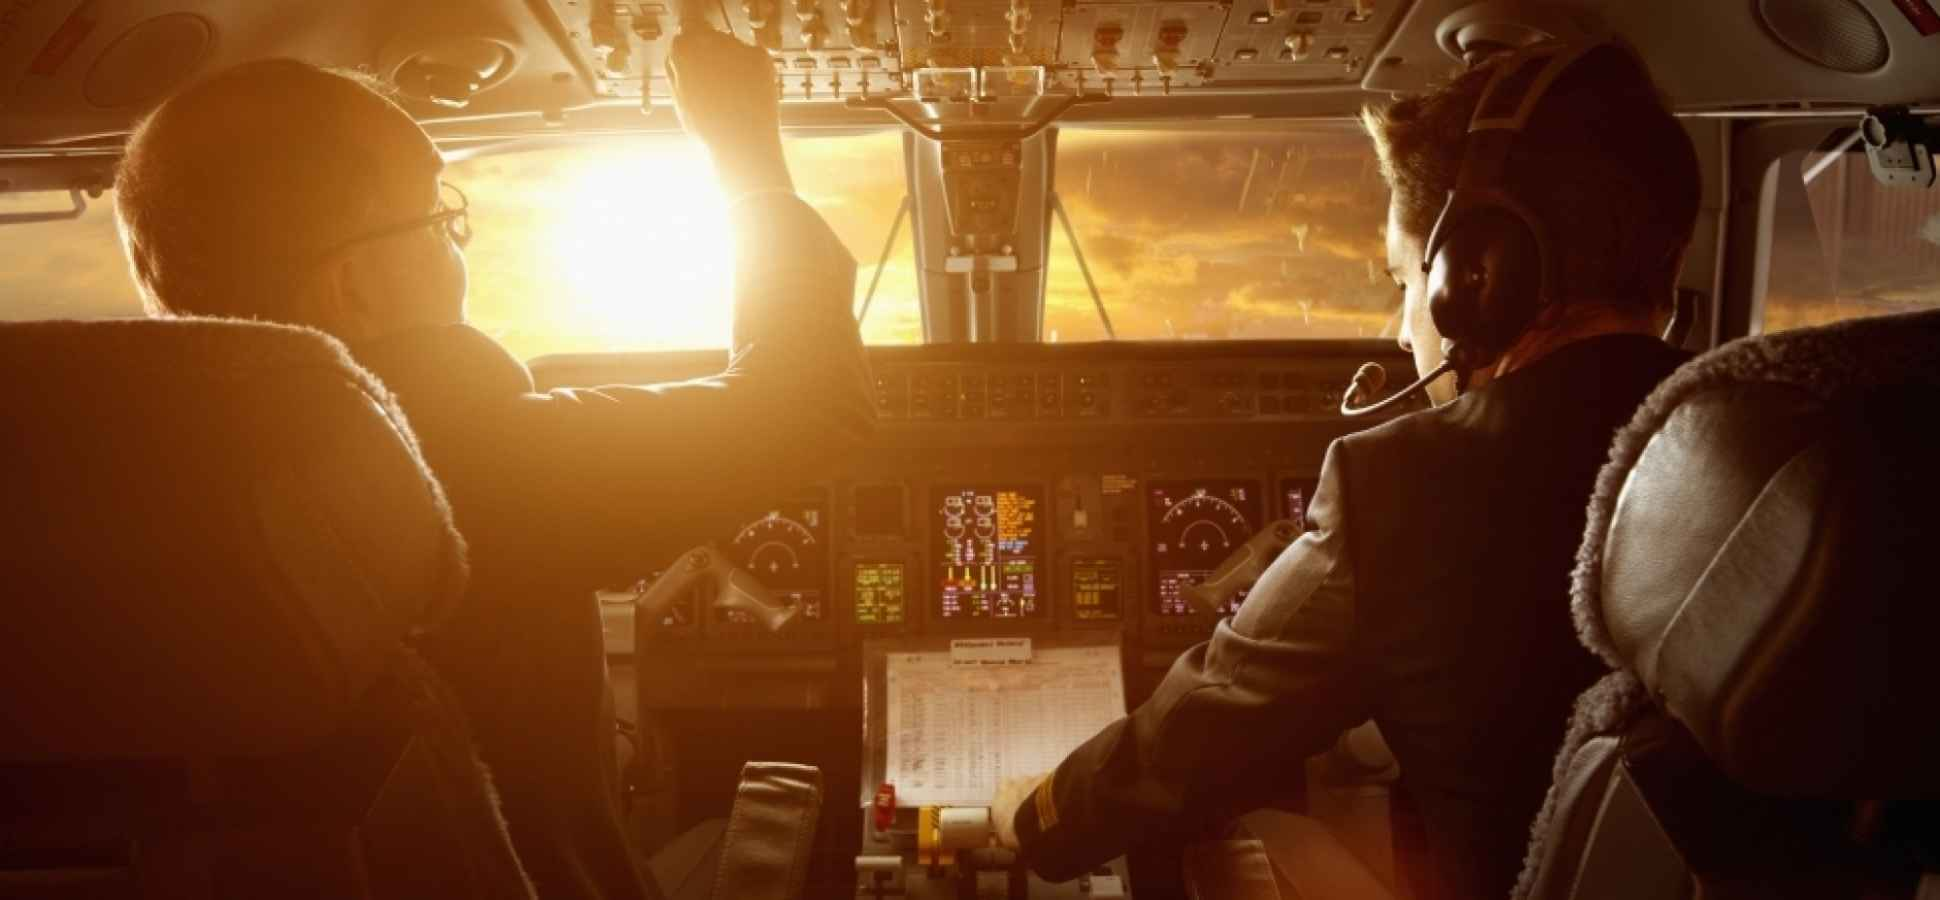 Travel Much for Work? These Pilots' Stories Might Just Terrify You